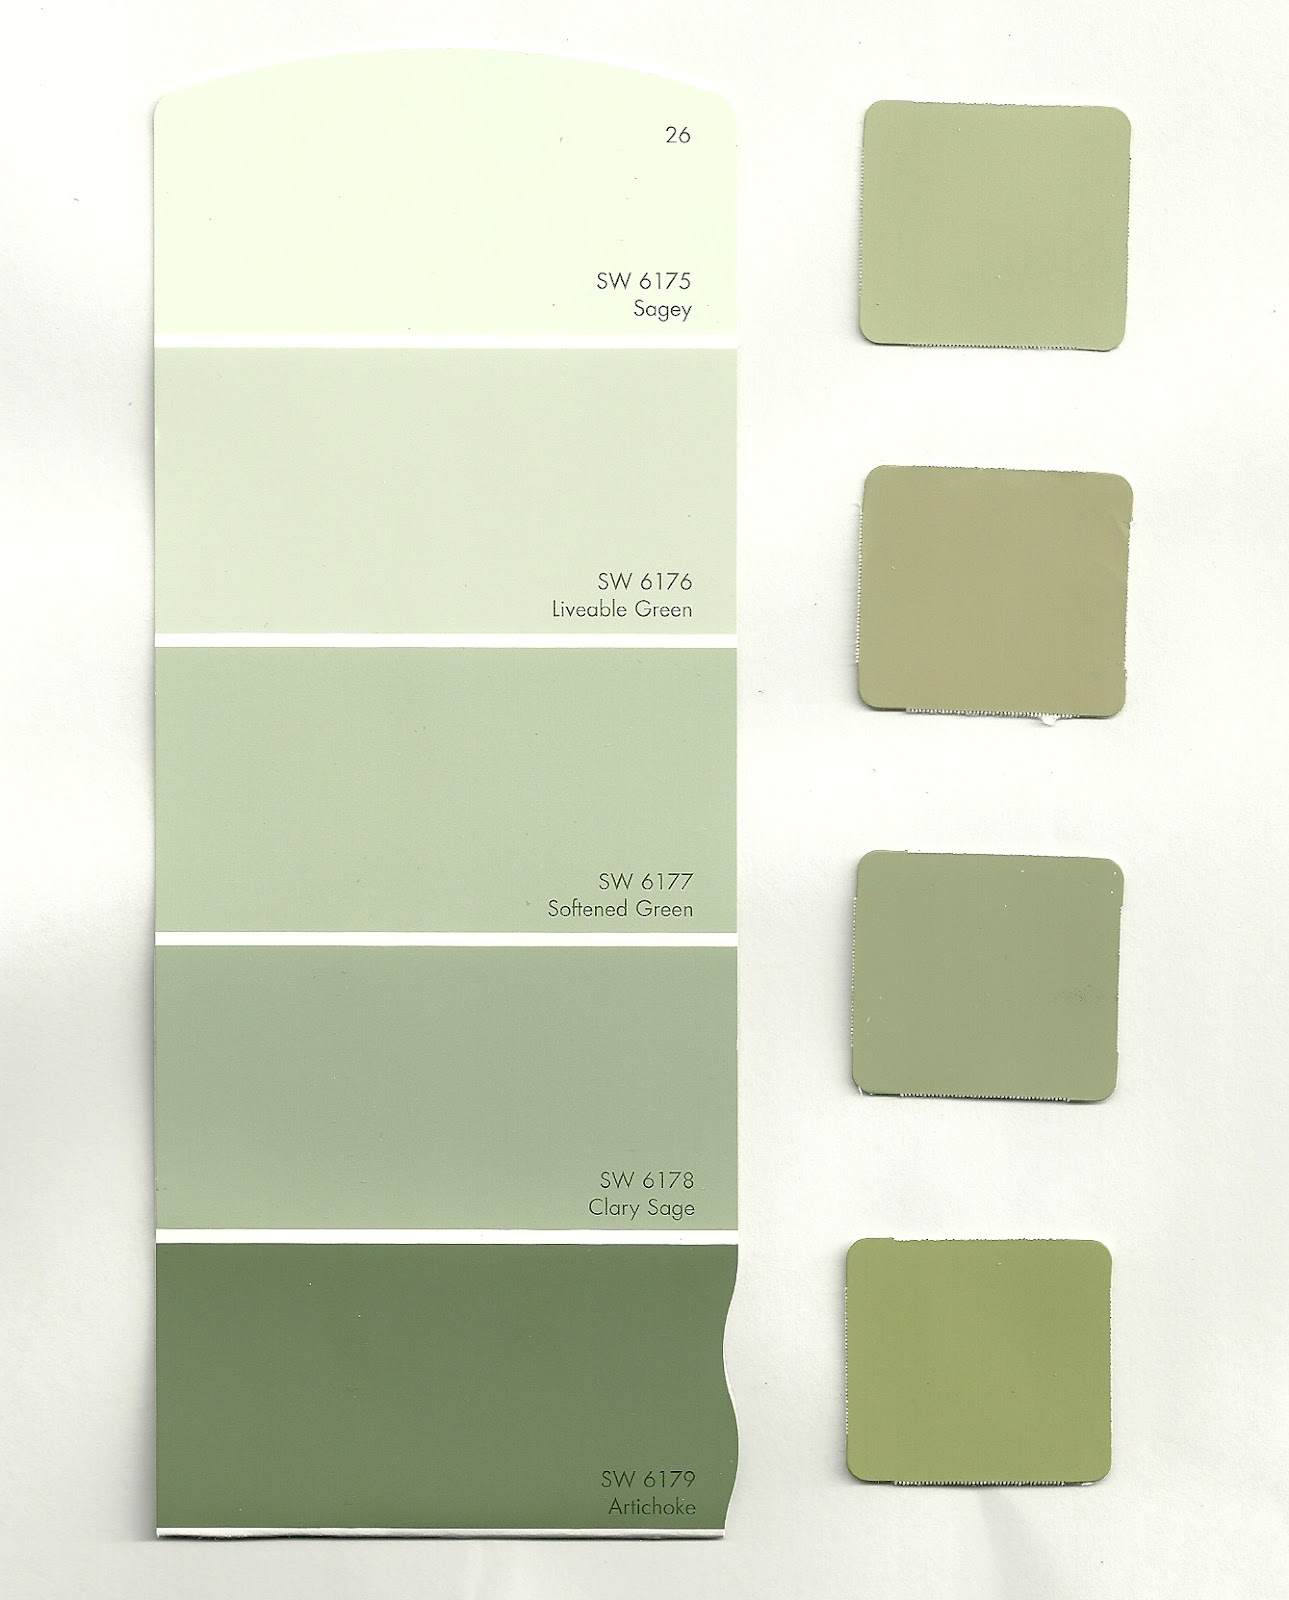 we are looking for a middle shade of olive or sage to compliment the